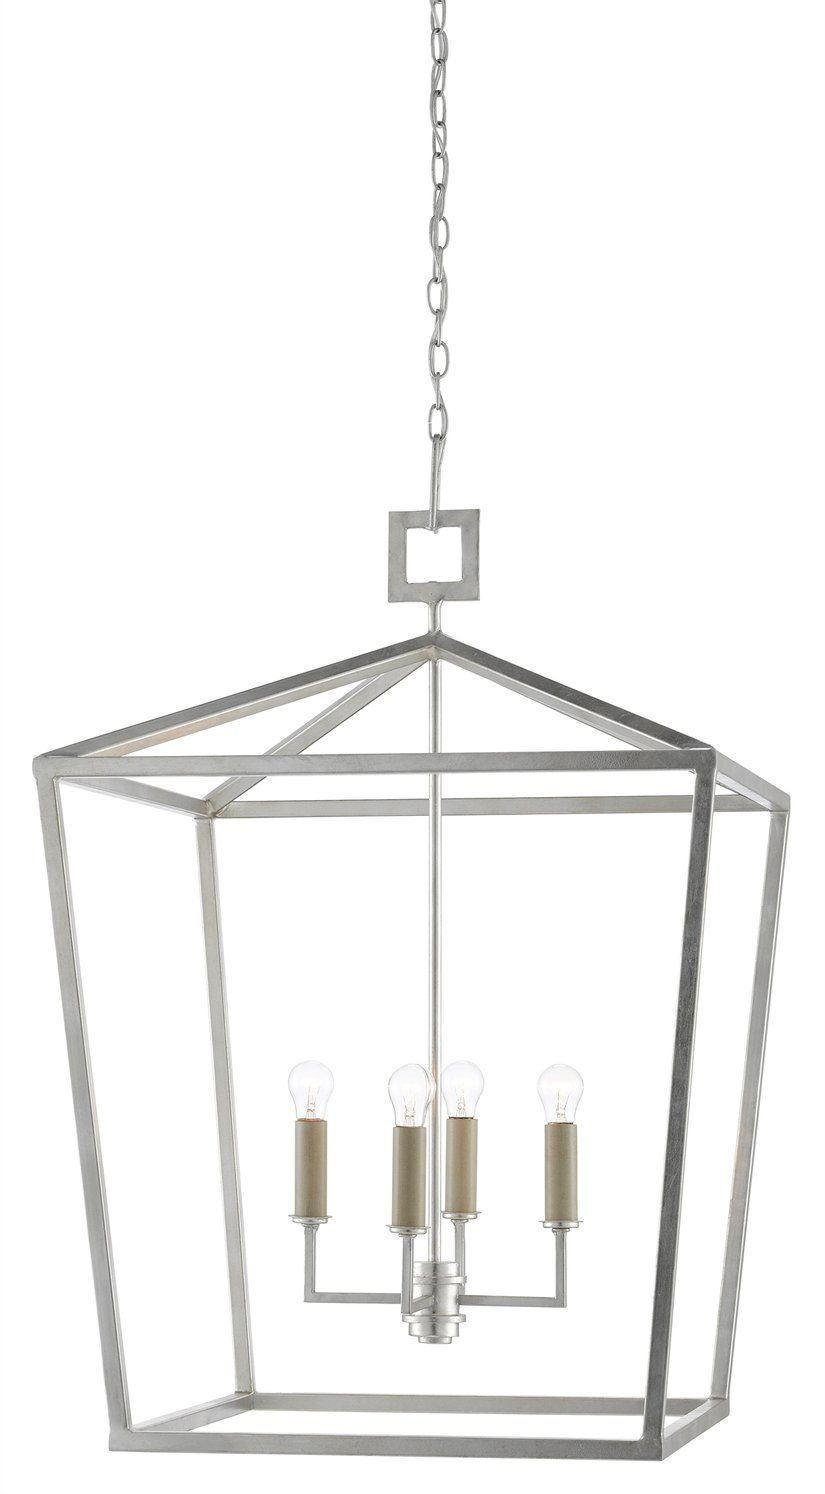 Denison Lantern Silver 4 Sizes Silver Lanterns Hanging Light Fixtures Silver Hanging Light